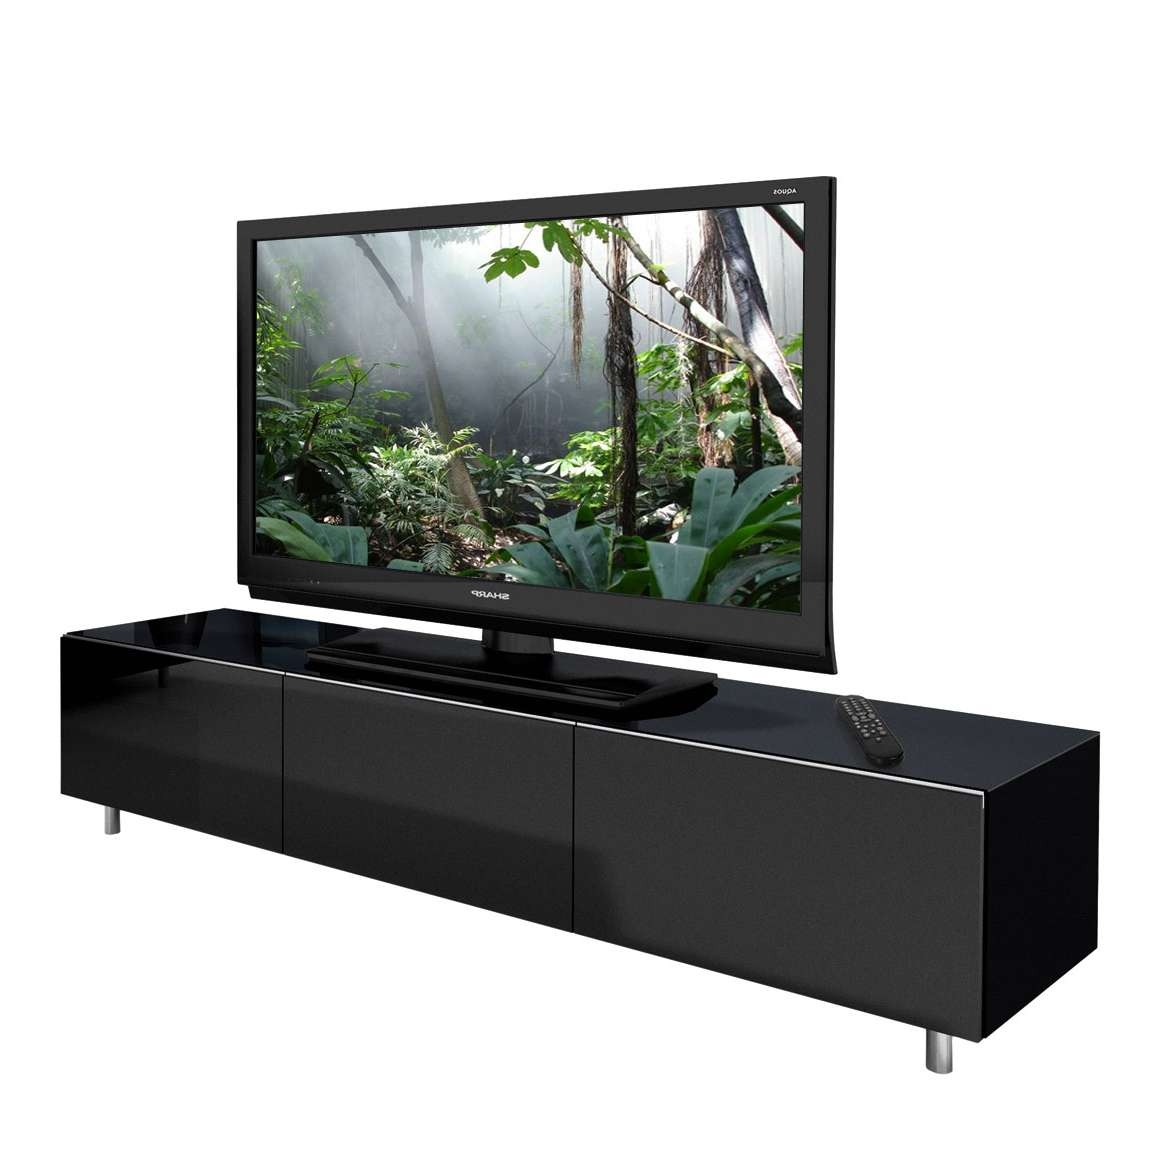 Just Racks Jrl1650 Gloss Black Tv Cabinet – Black Tv Stands Within Black Gloss Tv Cabinets (View 10 of 20)